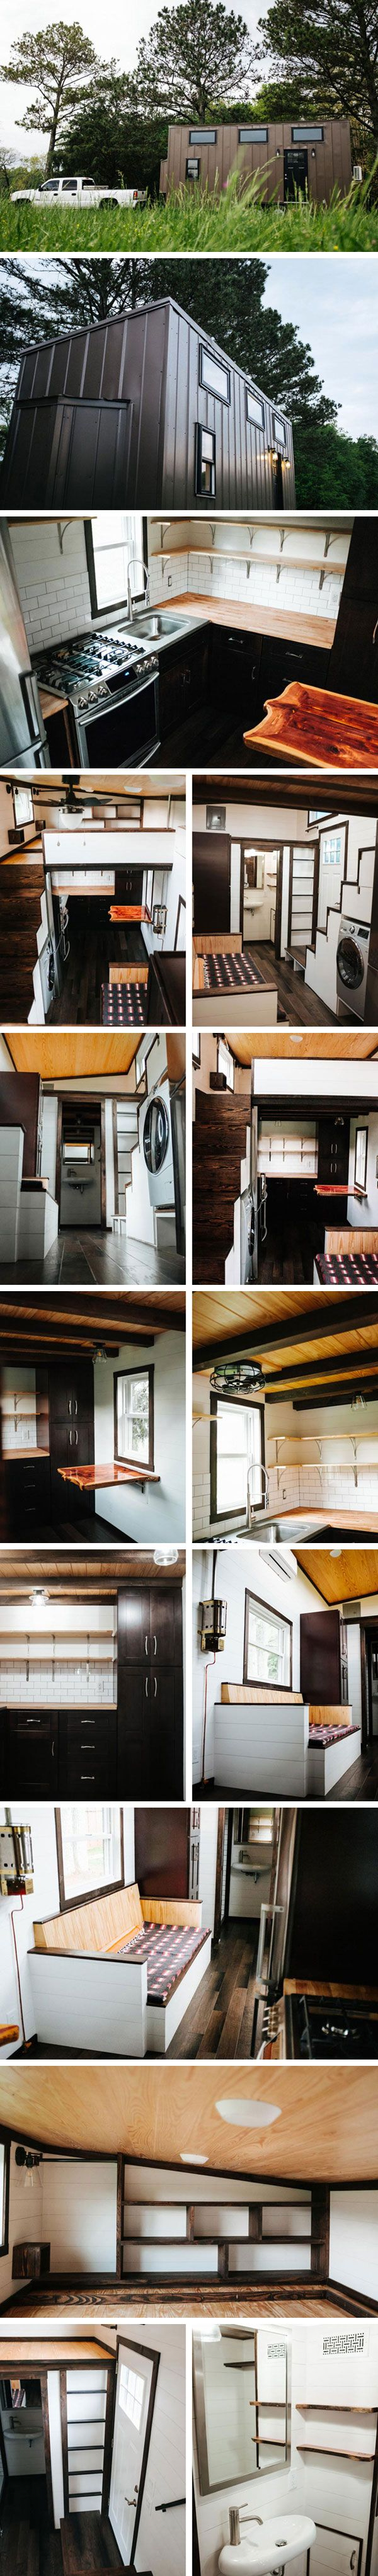 Дом на колесах Ironclad by Wind River Tiny Homes #tinyhomesdigest #tinyhouse #houseonwheels #camper